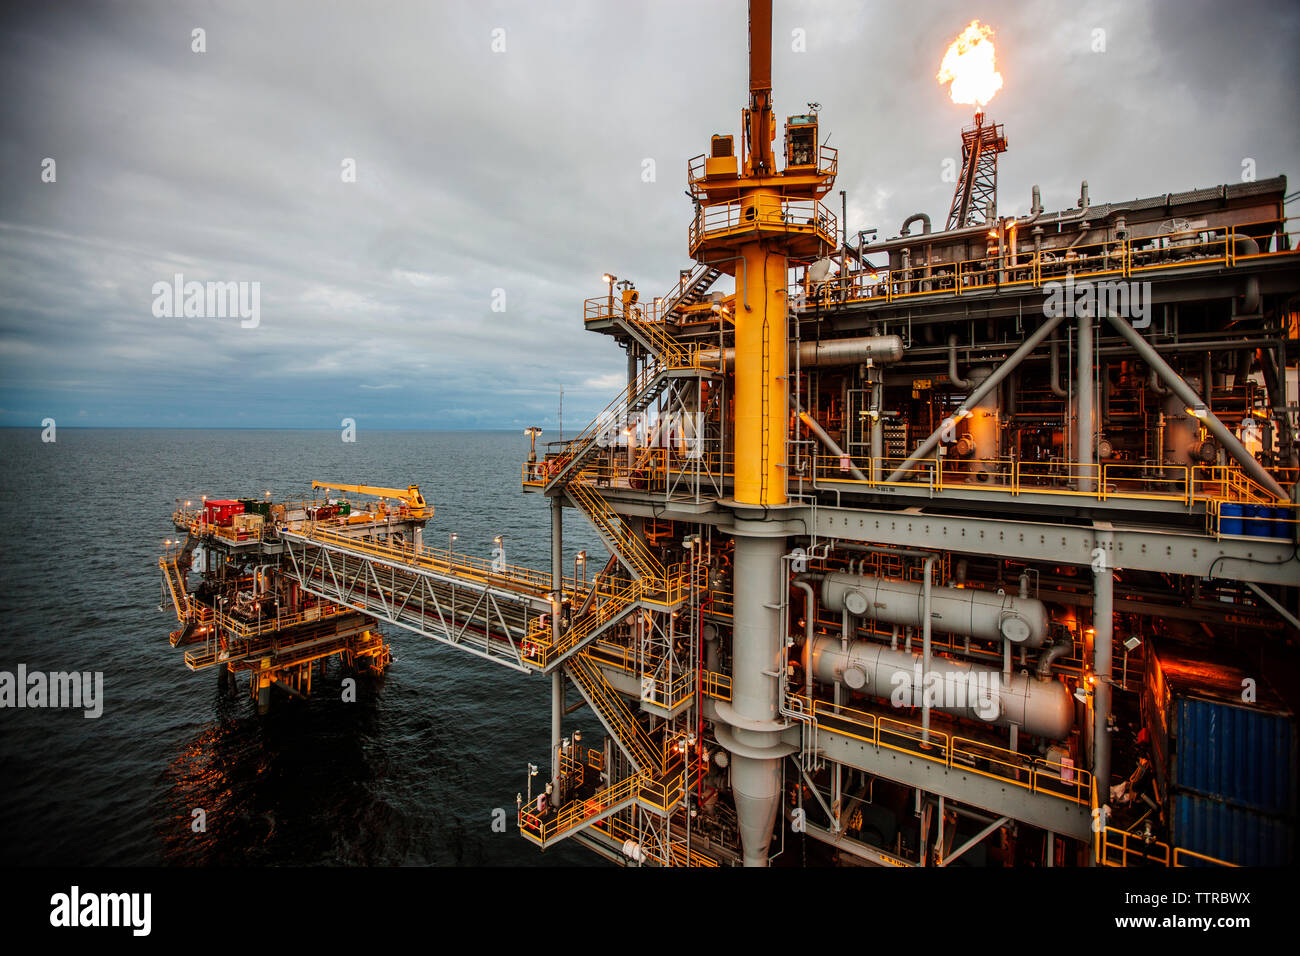 Oil rig in sea emitting fire Stock Photo